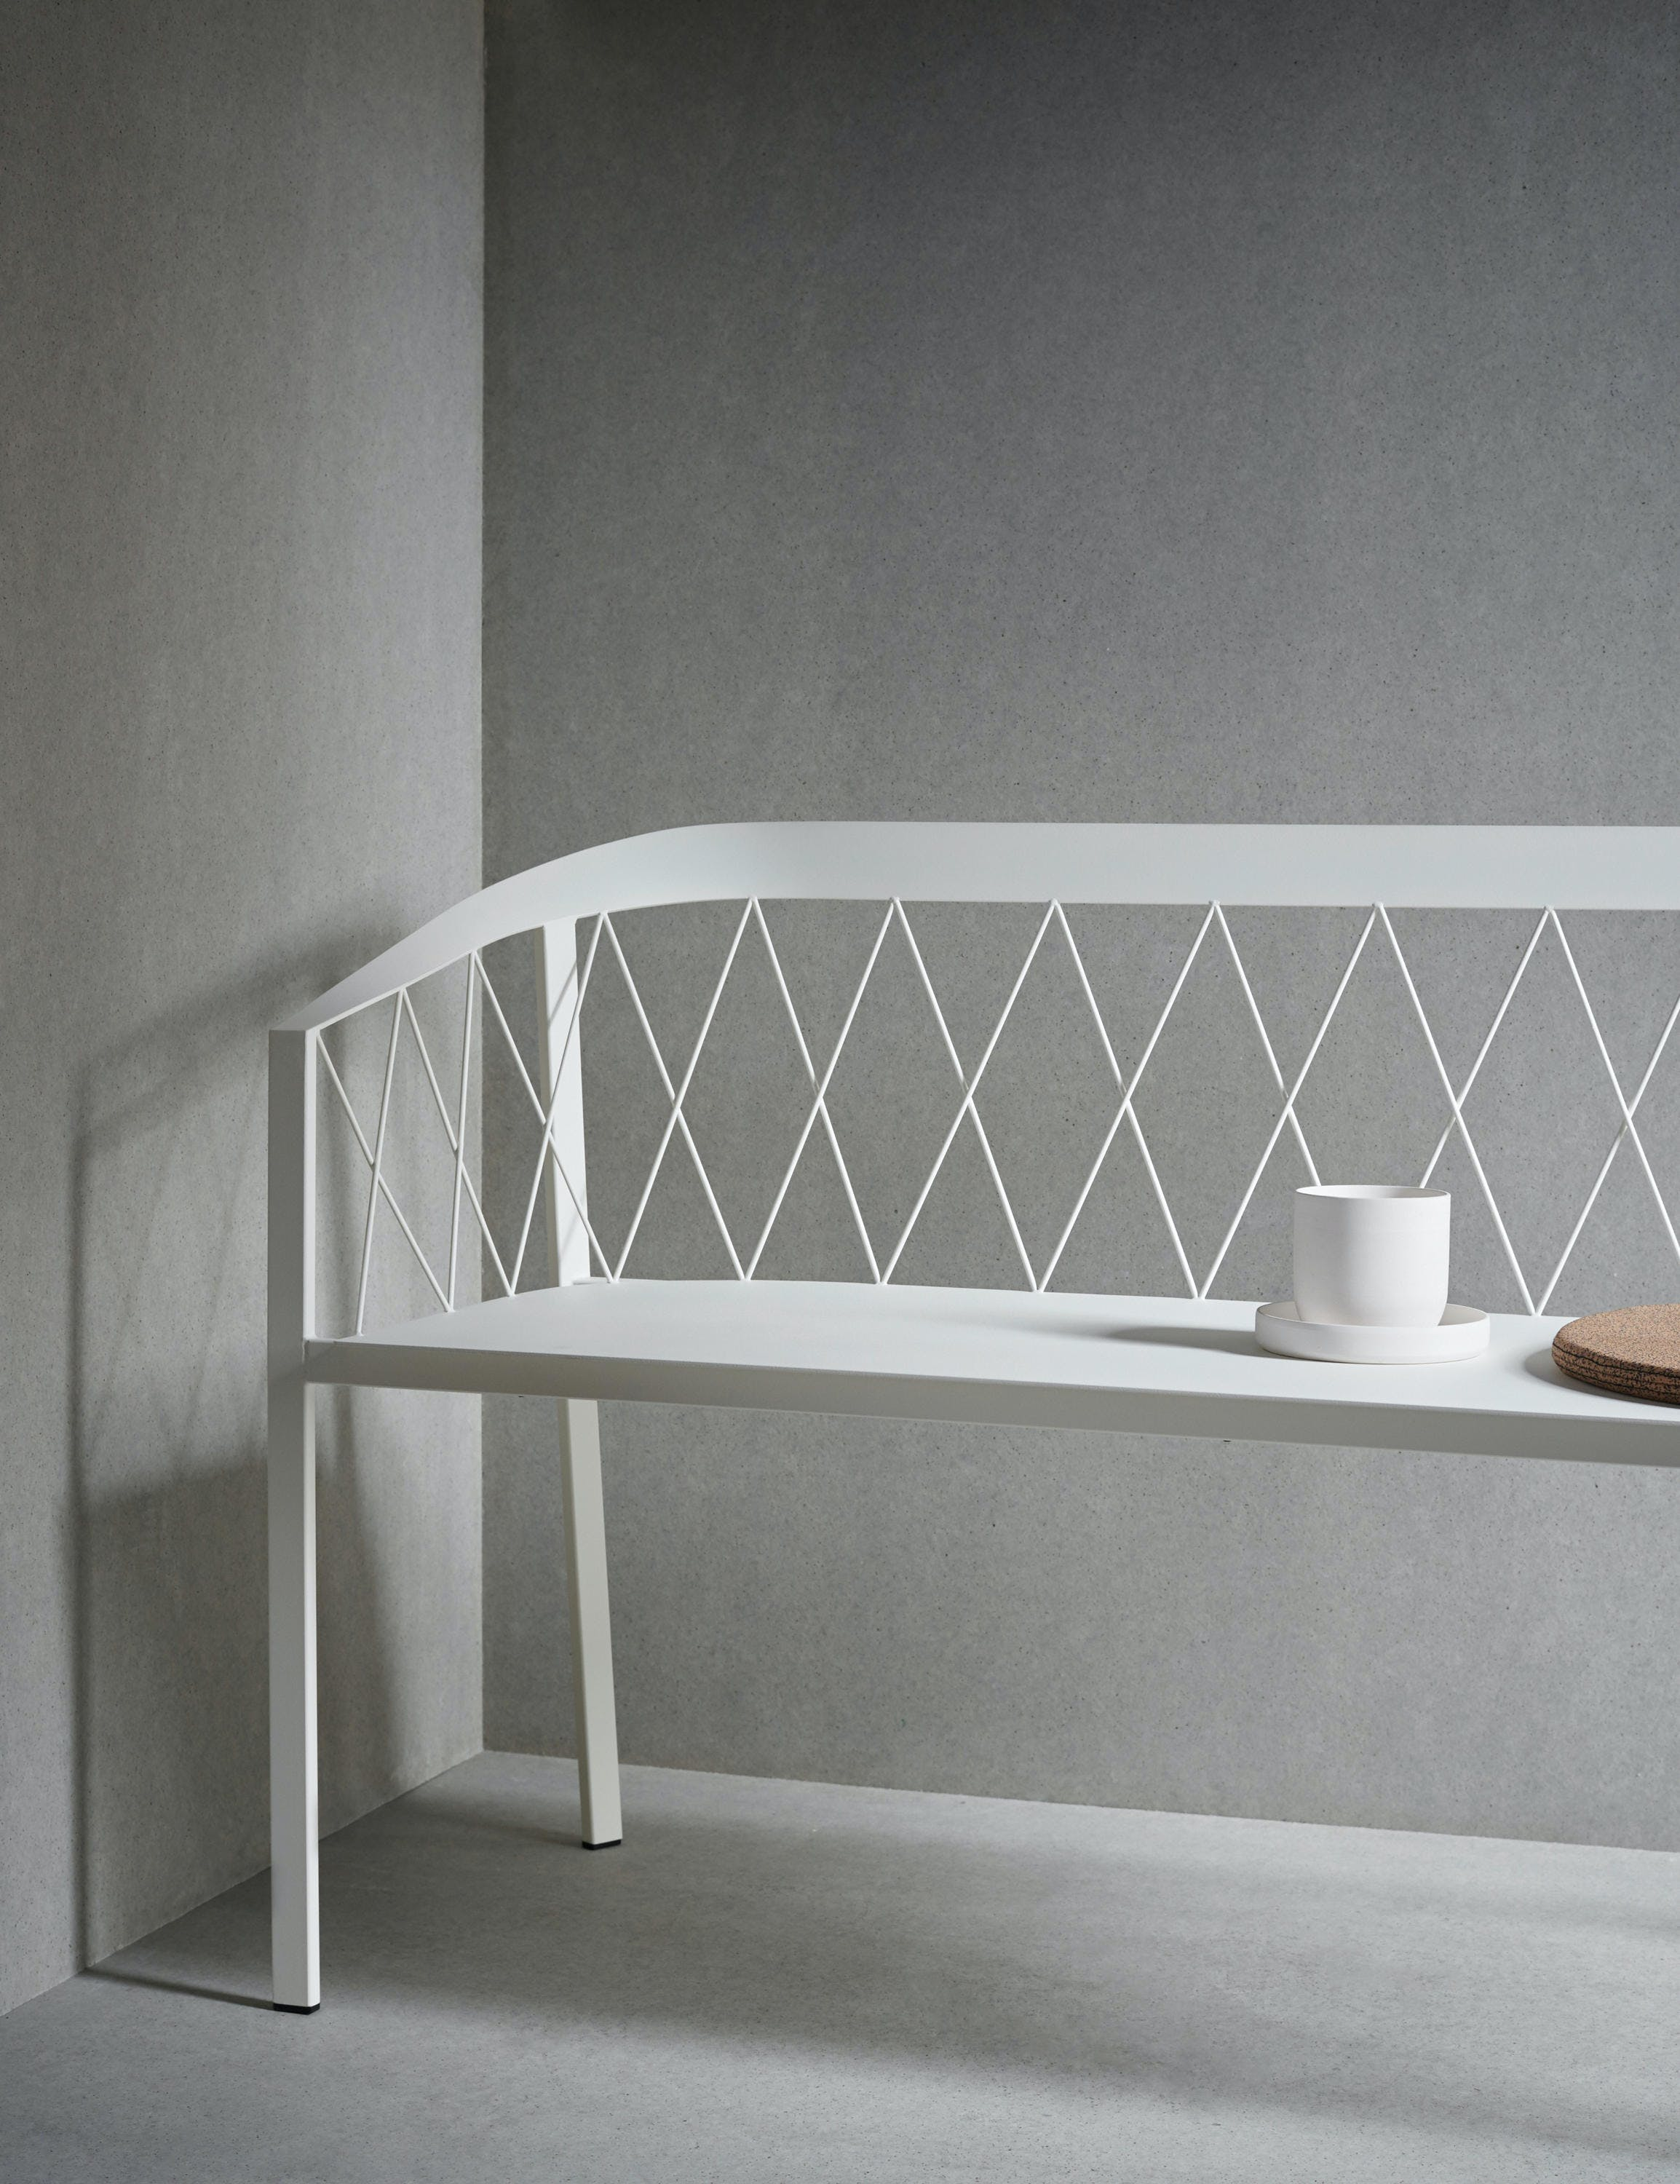 Our Bench By Friends Founders At Haute Living